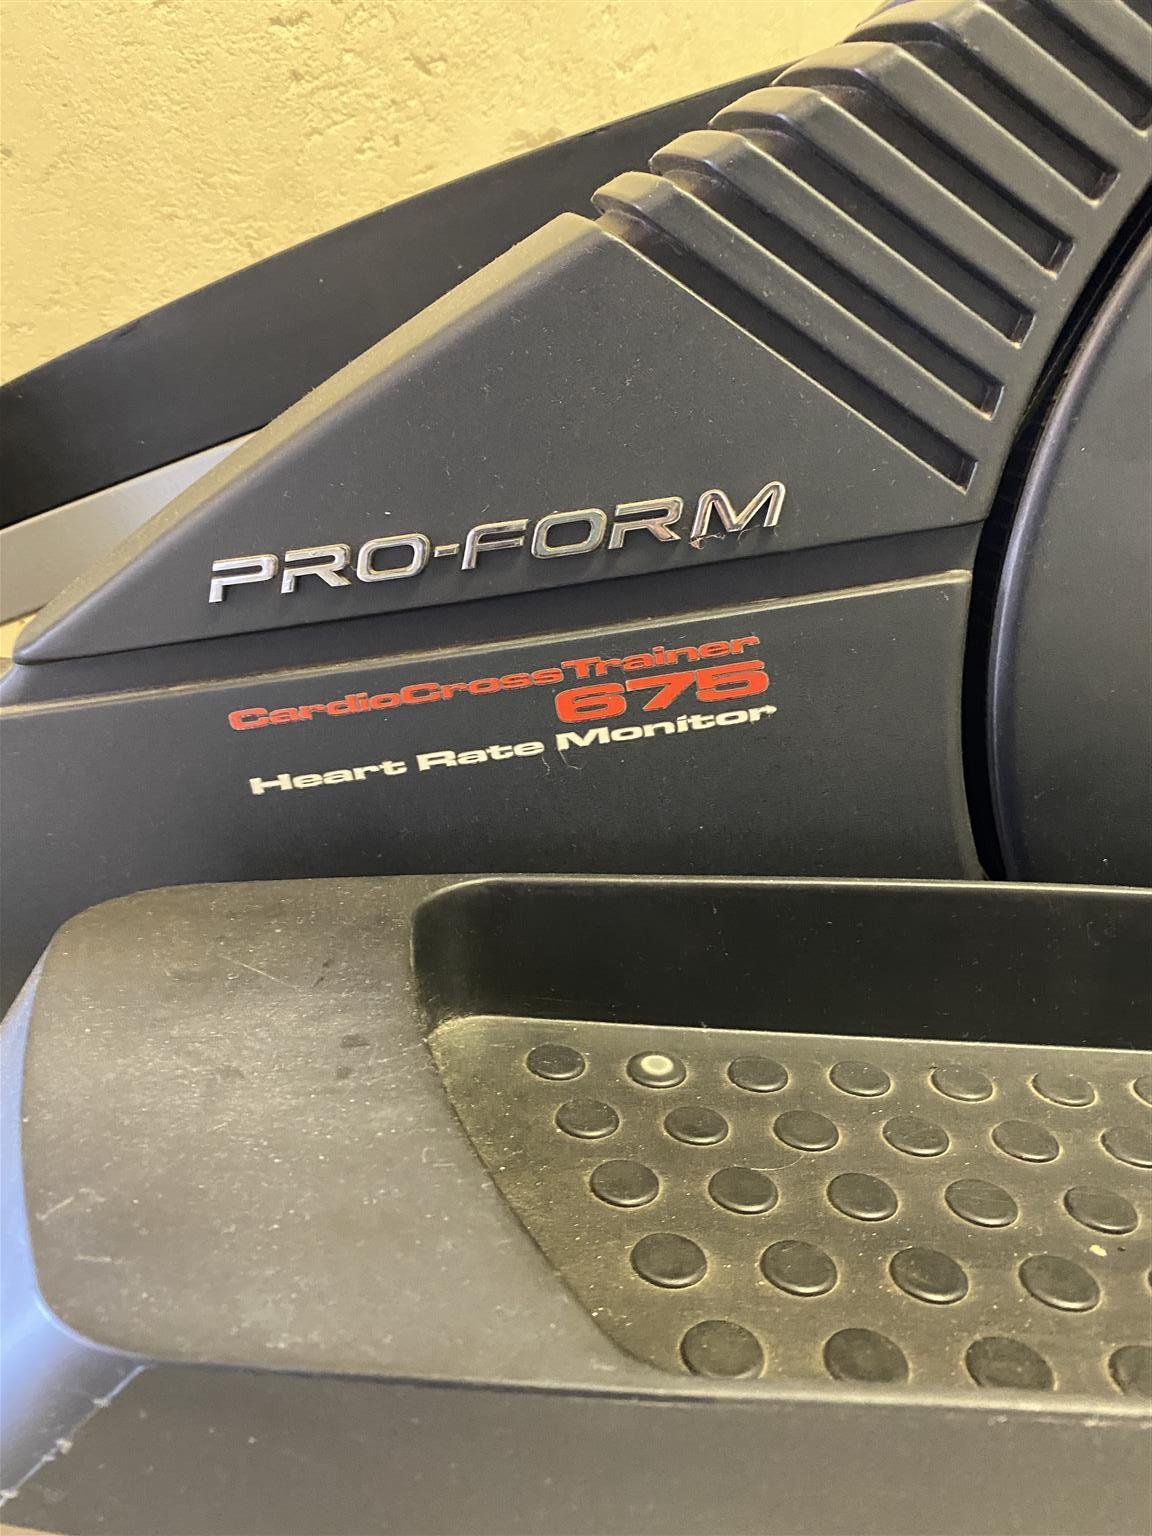 Pro-Form, Cardio Cross Trainer 675, Heart Rate Monitor